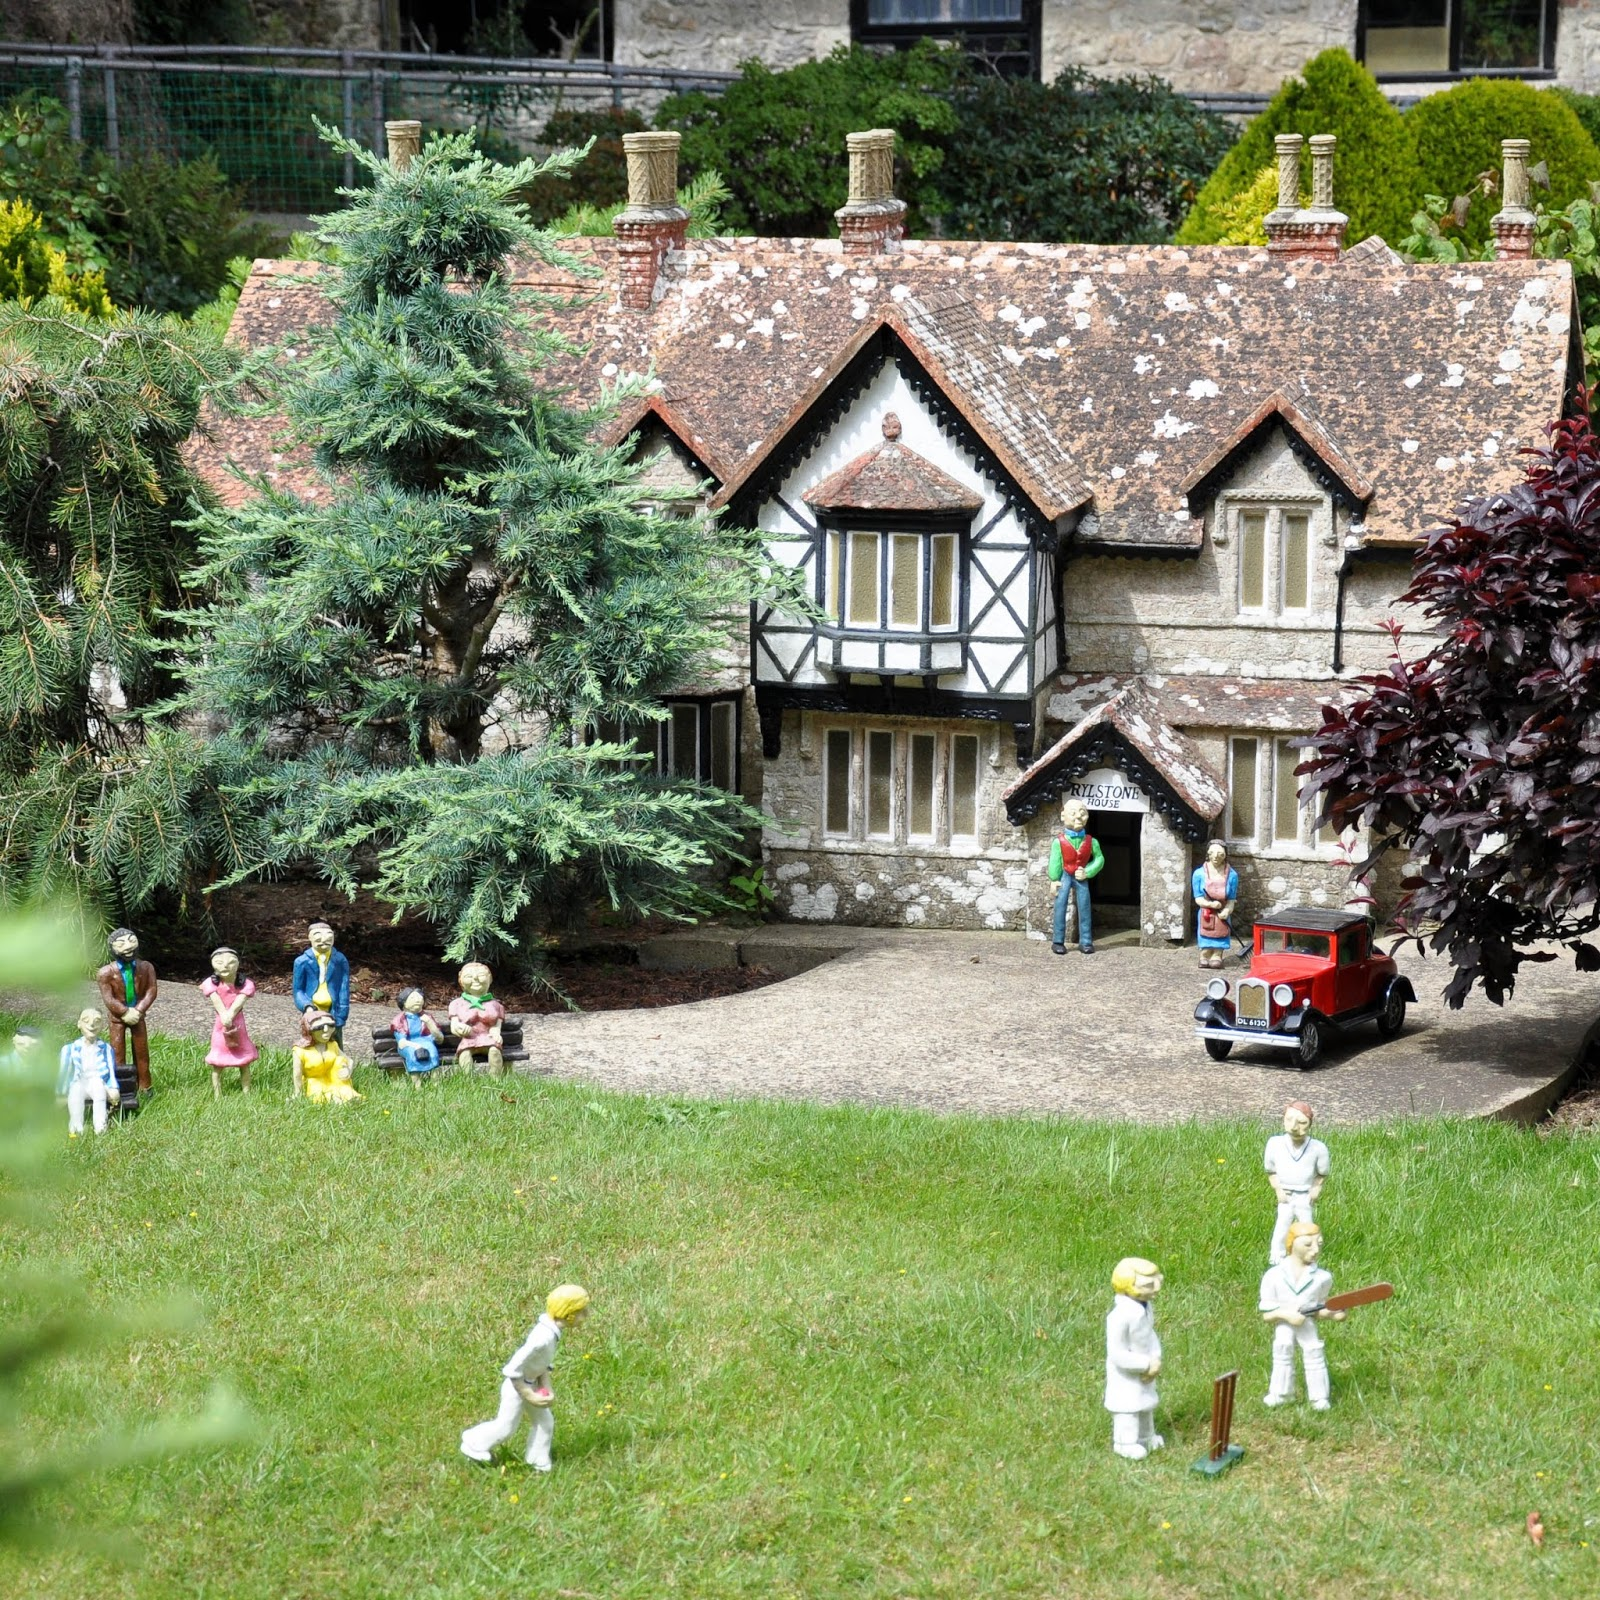 Game of cricket, Model Village, Godshill, Isle of Wight, UK